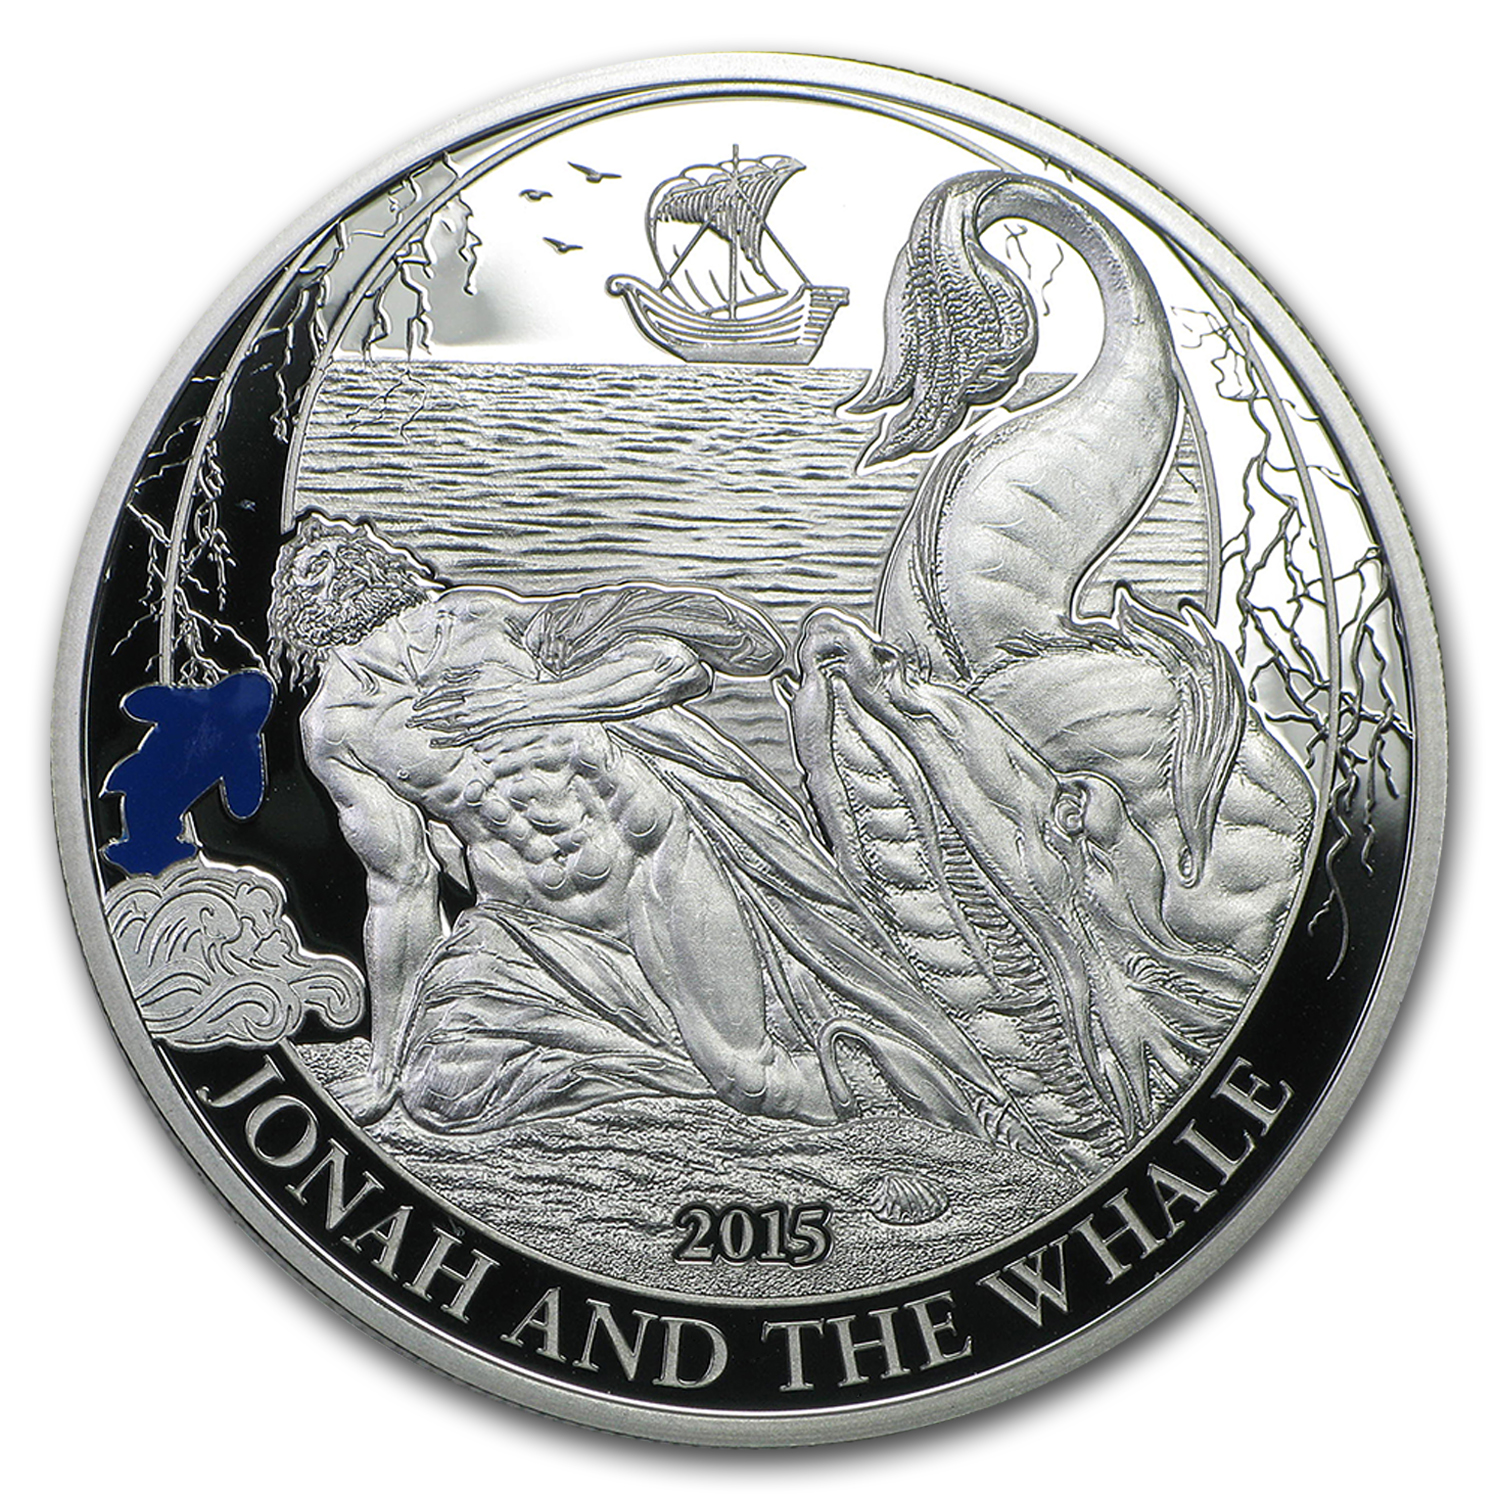 2015 Palau Proof Silver Biblical Stories Jonah and the Whale